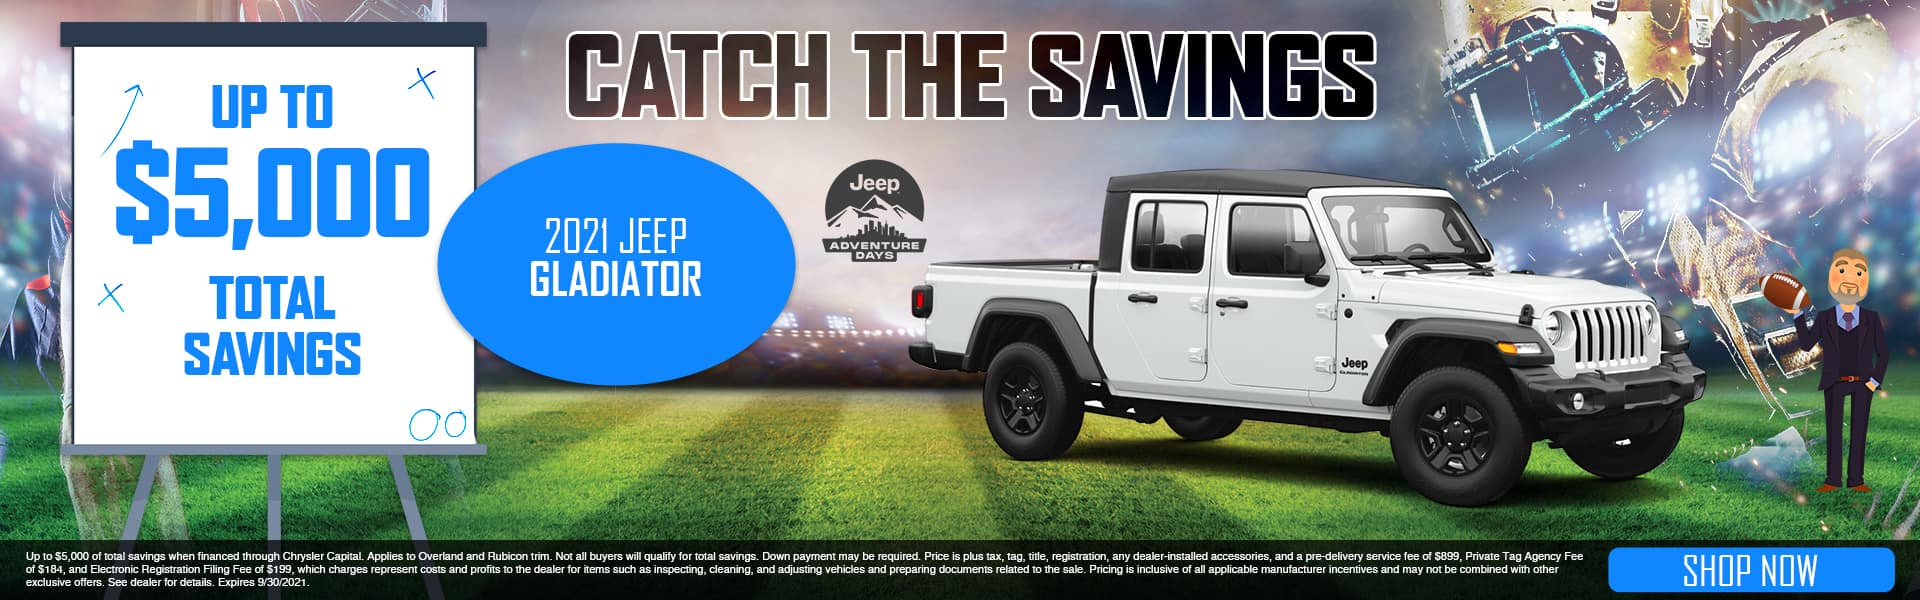 Catch The Savings | 2021 Jeep Gladiator | Up To $5,000 Total Savings